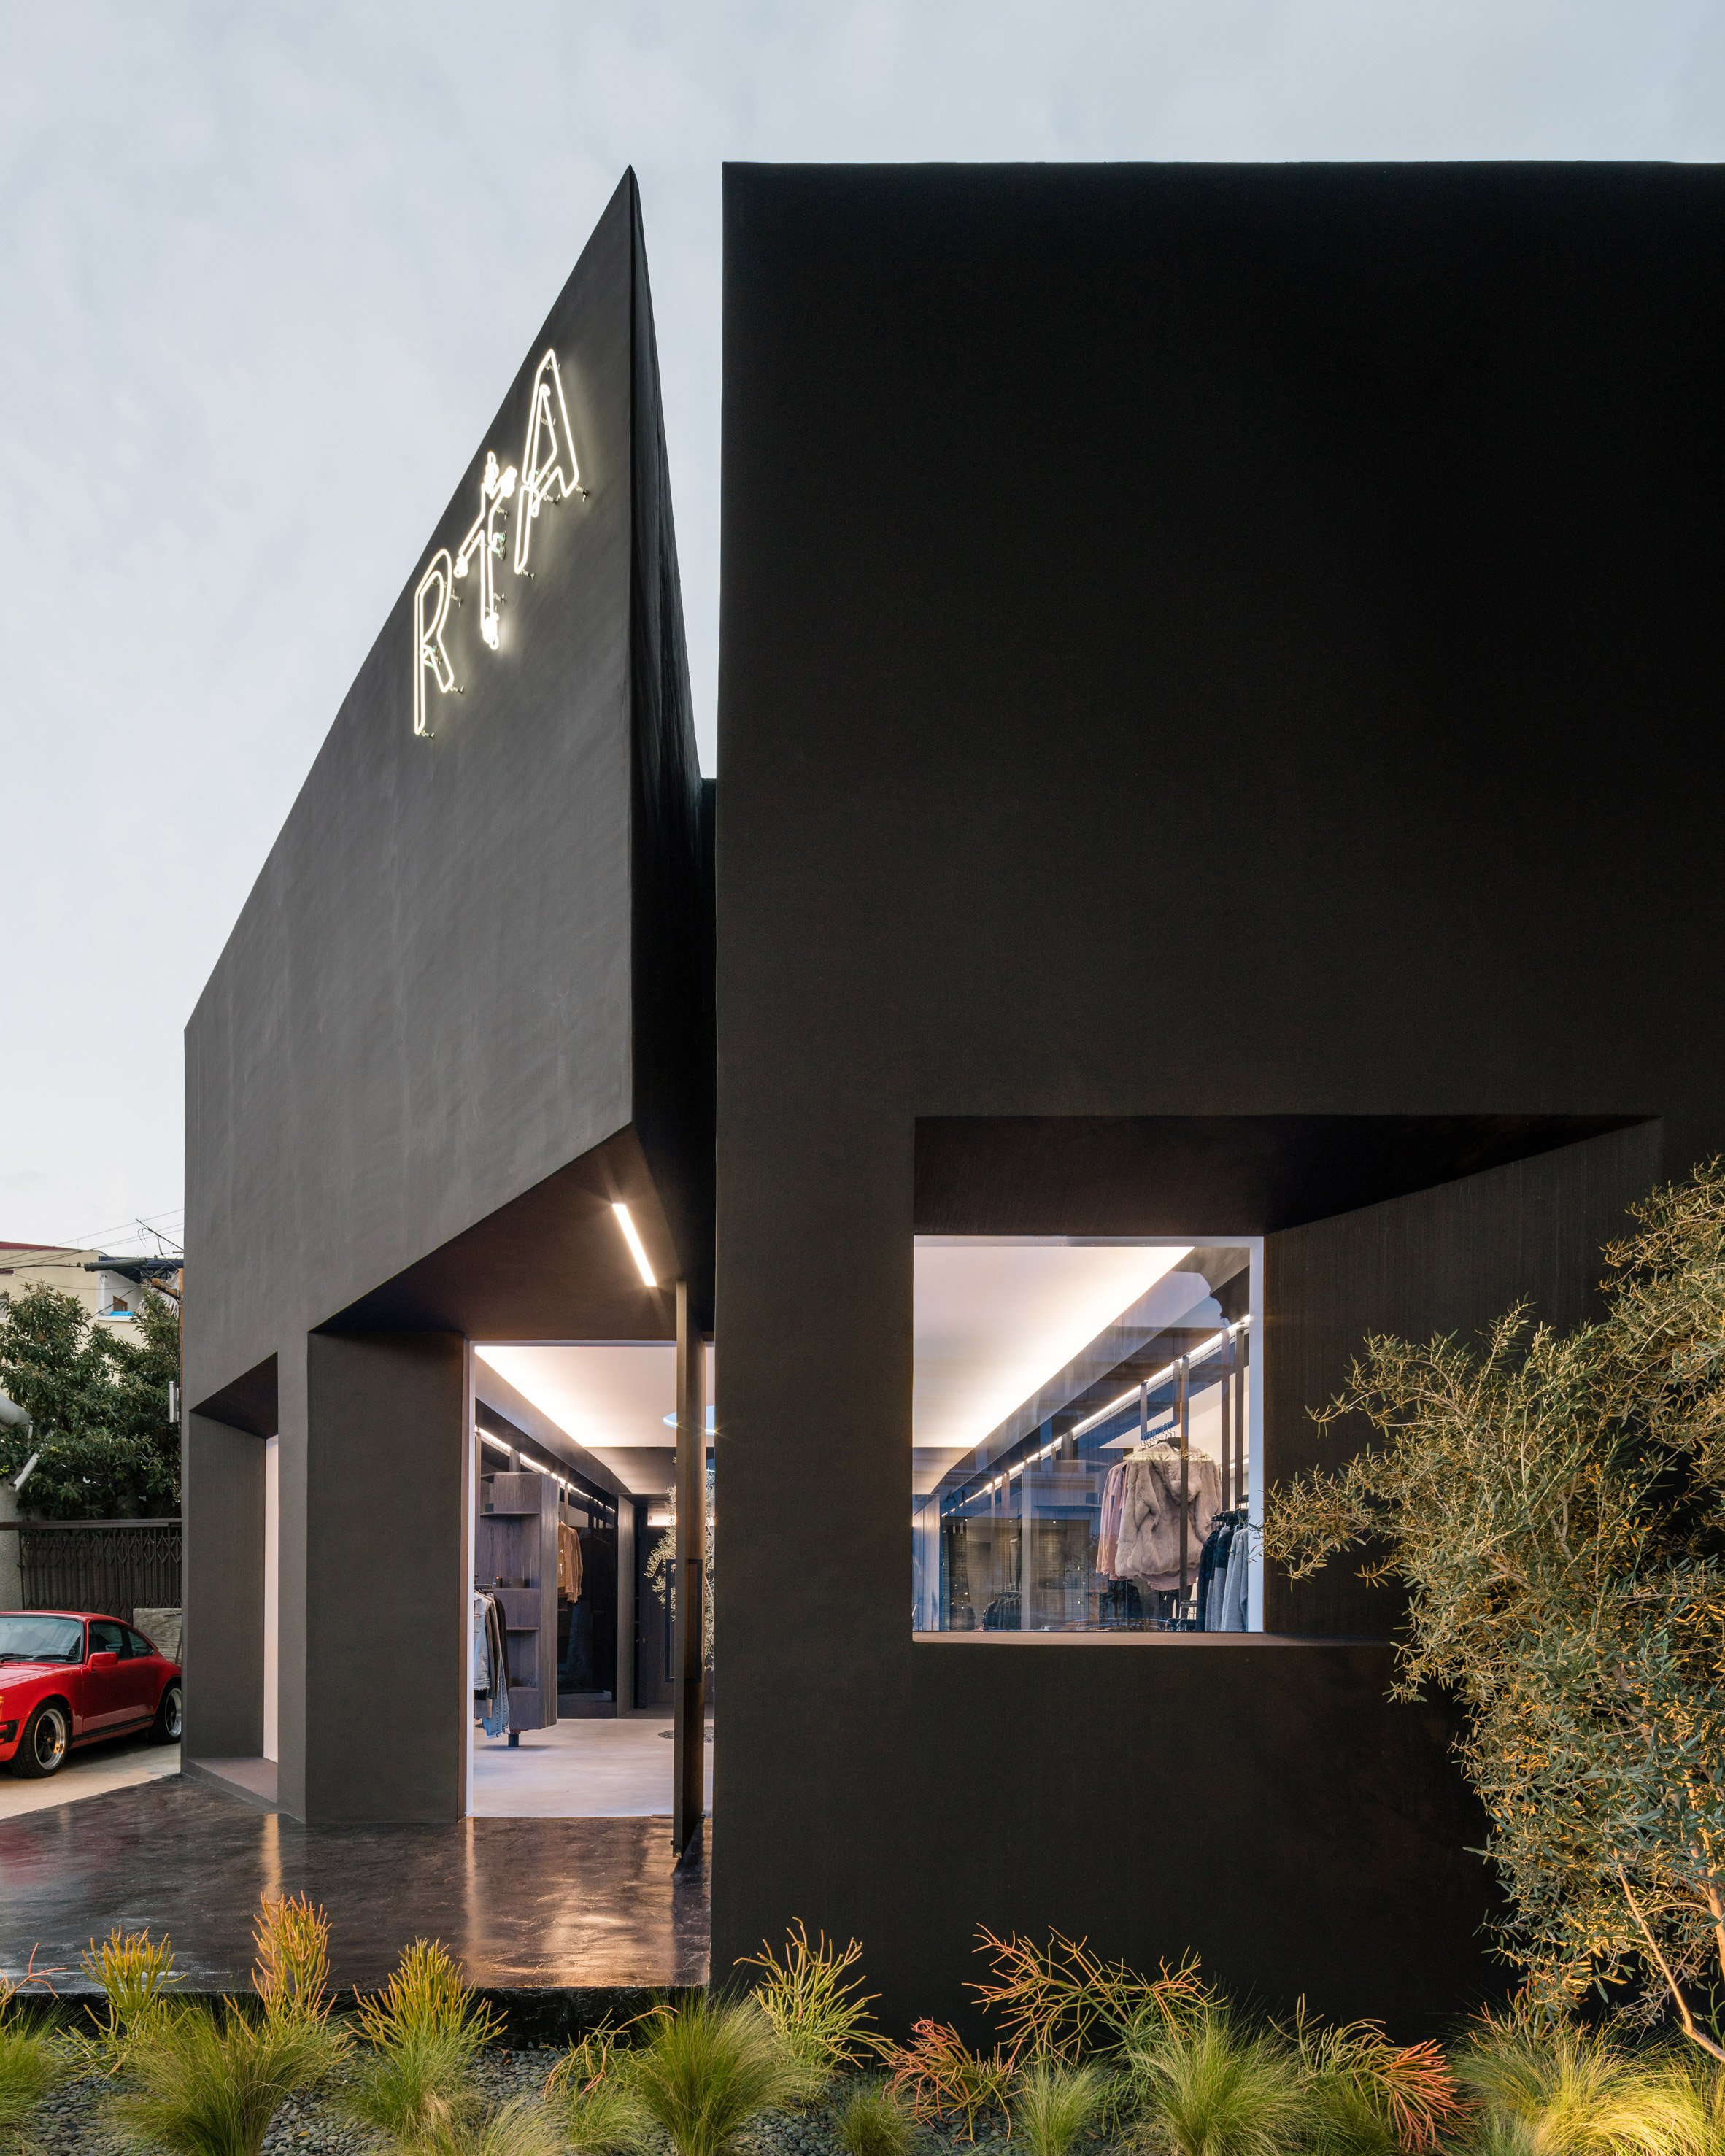 road-to-awe-flagship-dan-brunn-architecture-los-angeles-usa_dezeen_2364_col_9.jpg